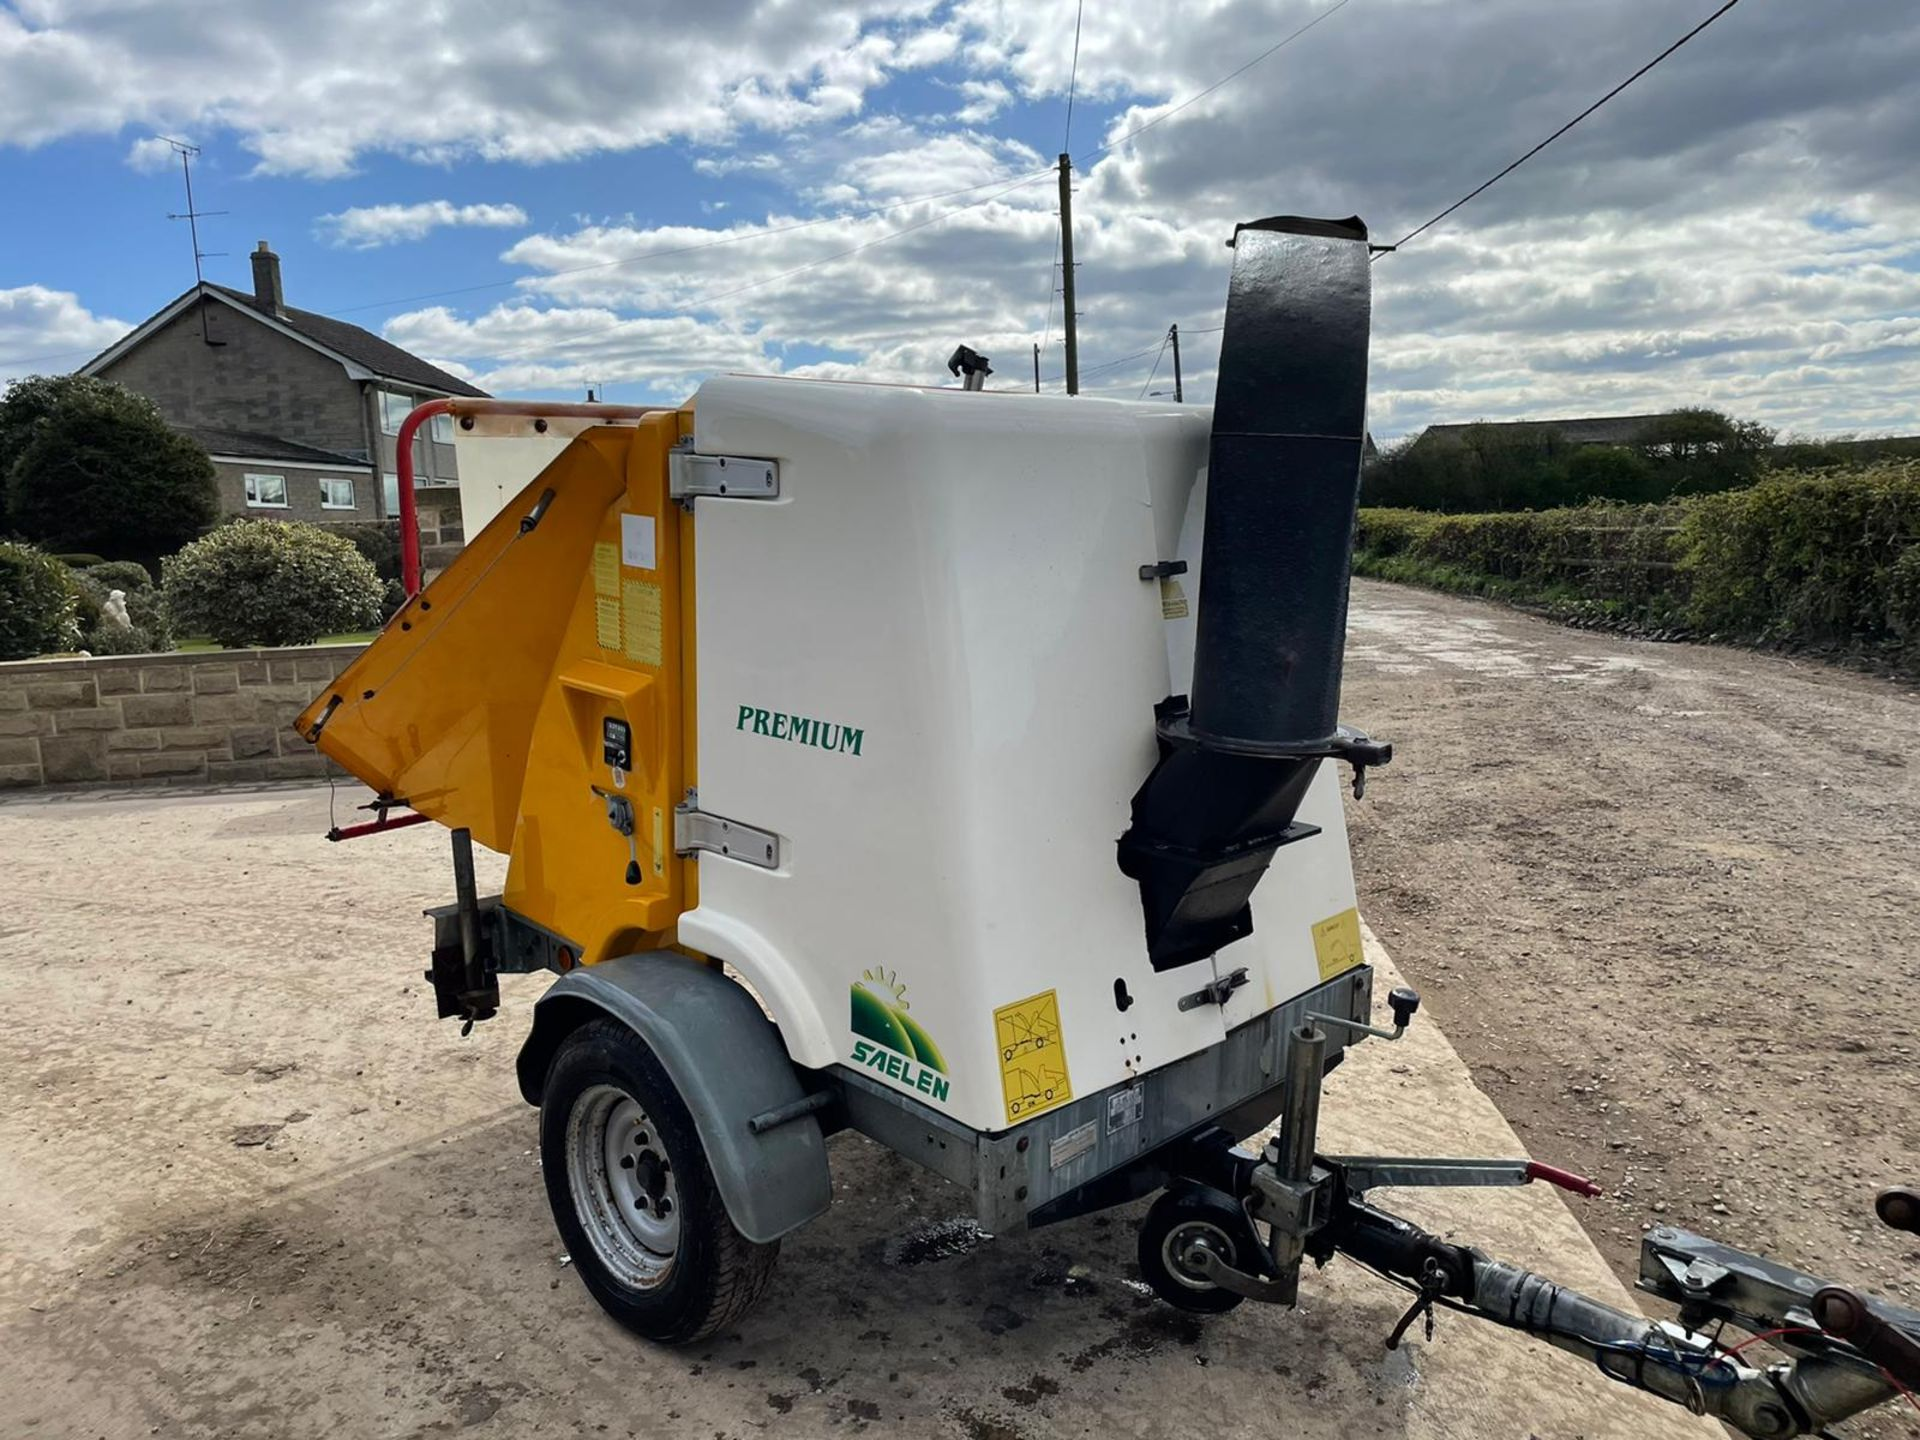 2007 SAELEN PREMIUM WOOD CHIPPER, RUNS AND CHIPS, IN GOOD CONDITION, LOW 160 HOURS *PLUS VAT* - Image 4 of 7